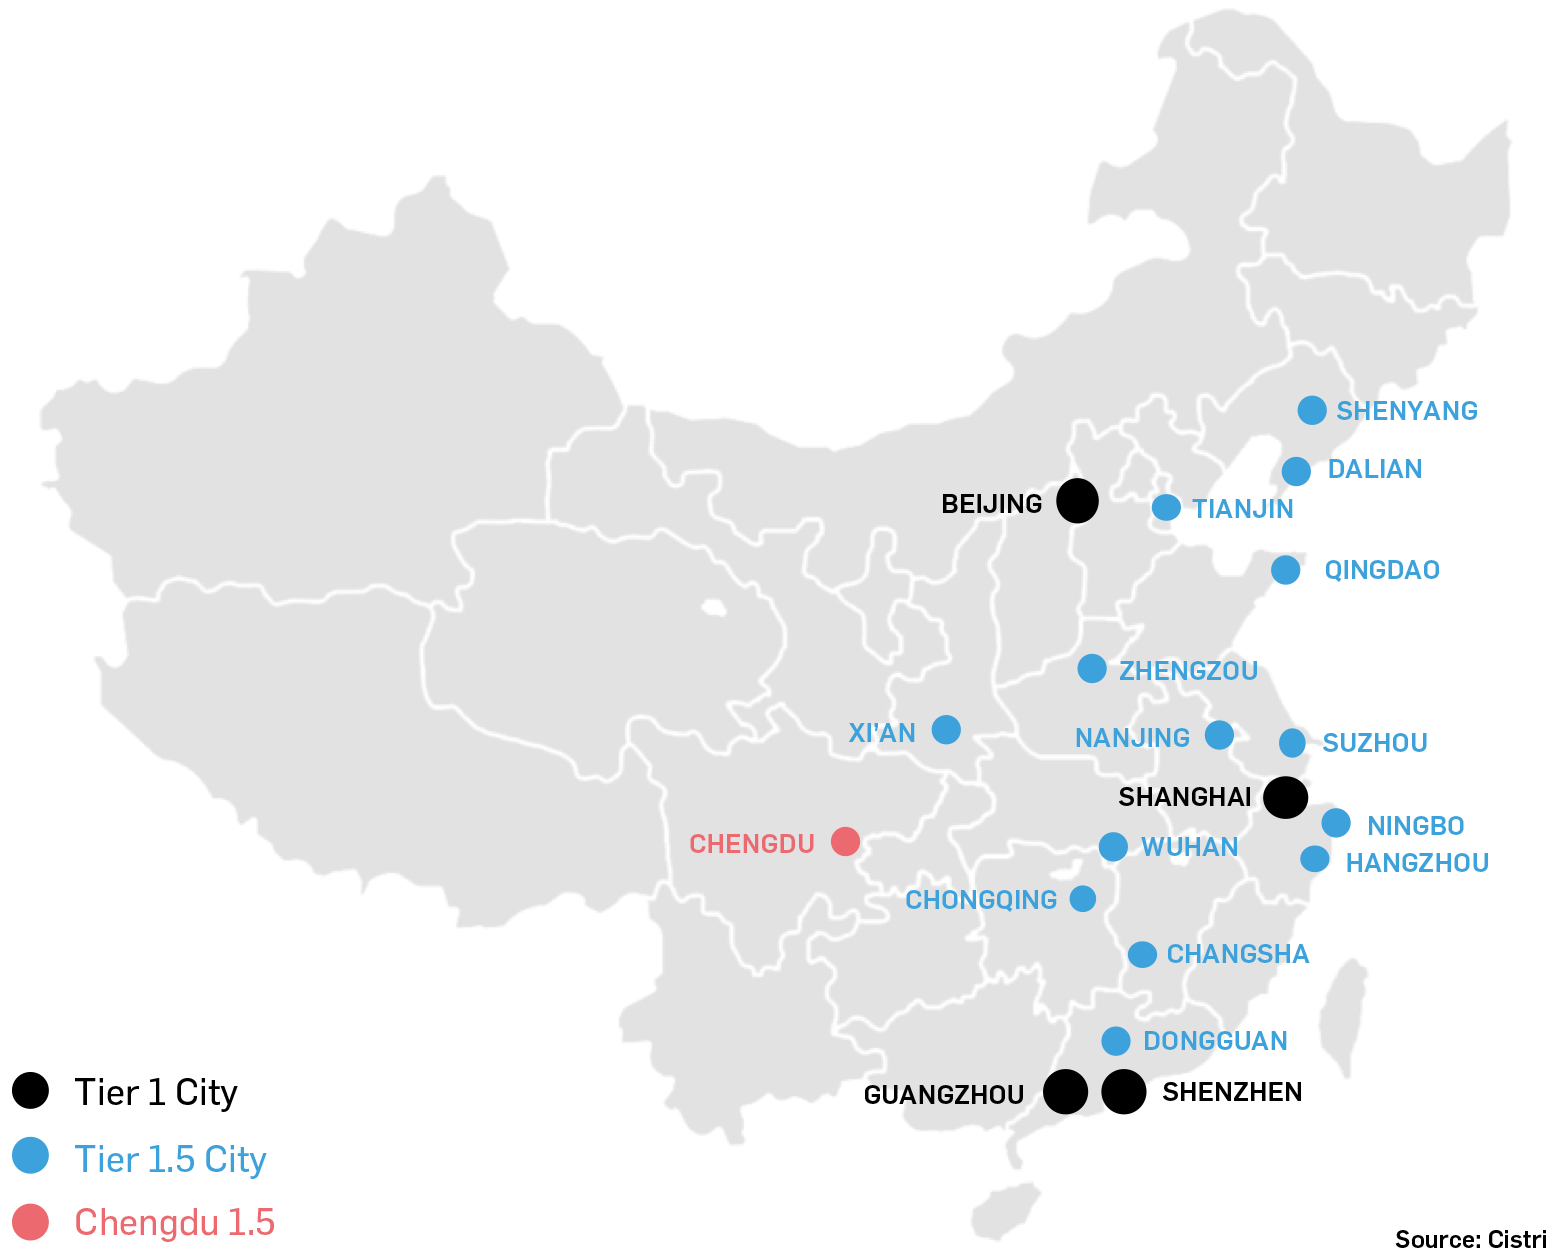 Cities within China